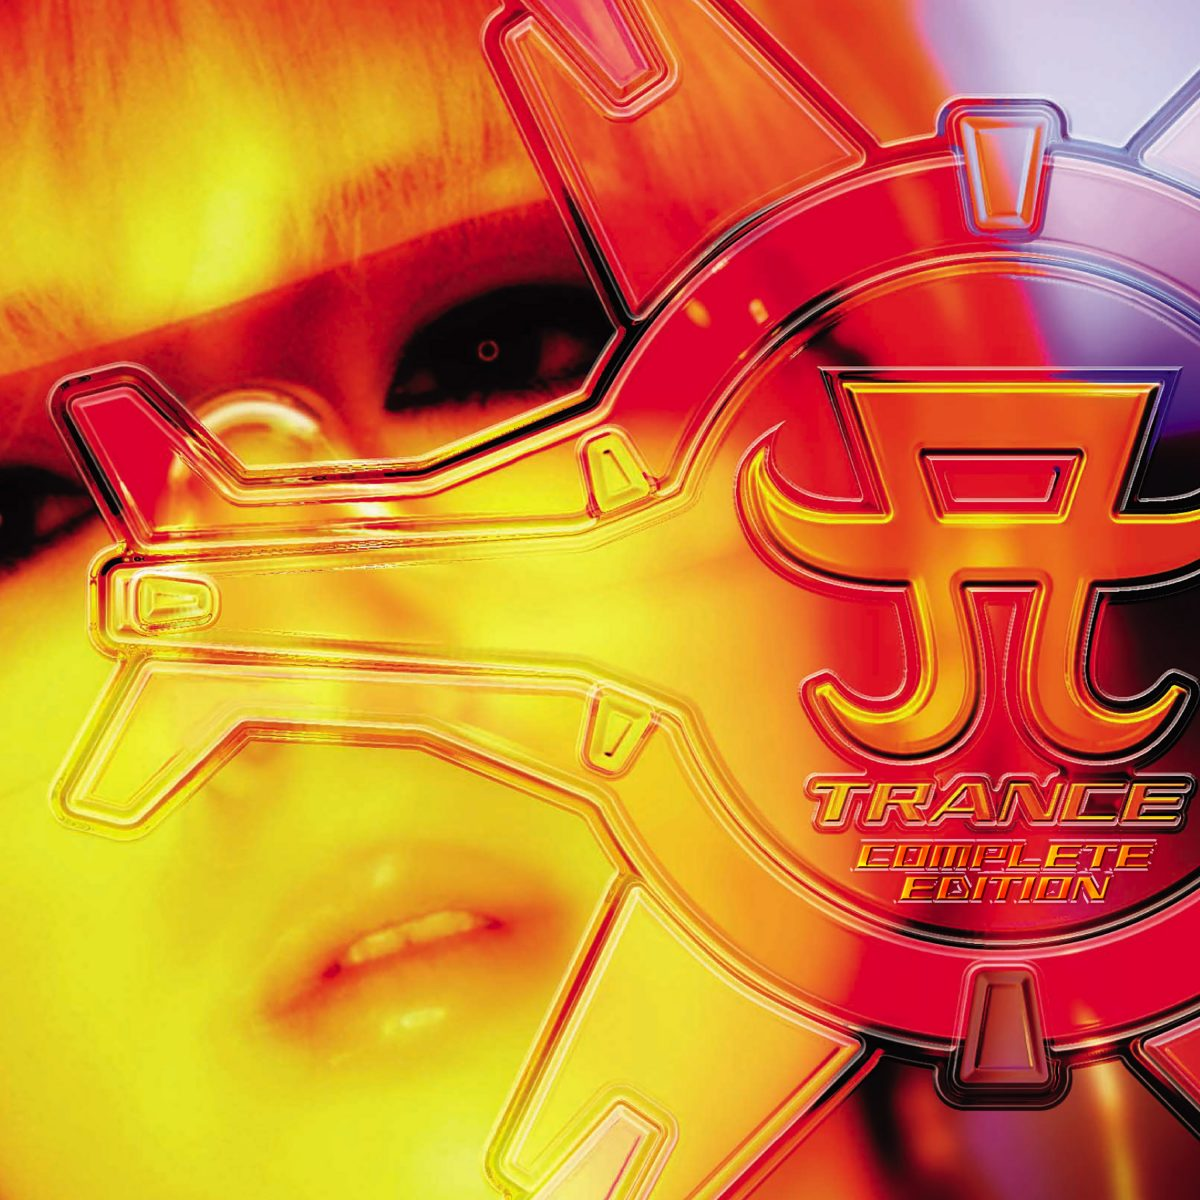 Cyber TRANCE presents ayu trance -COMPLETE EDITION-